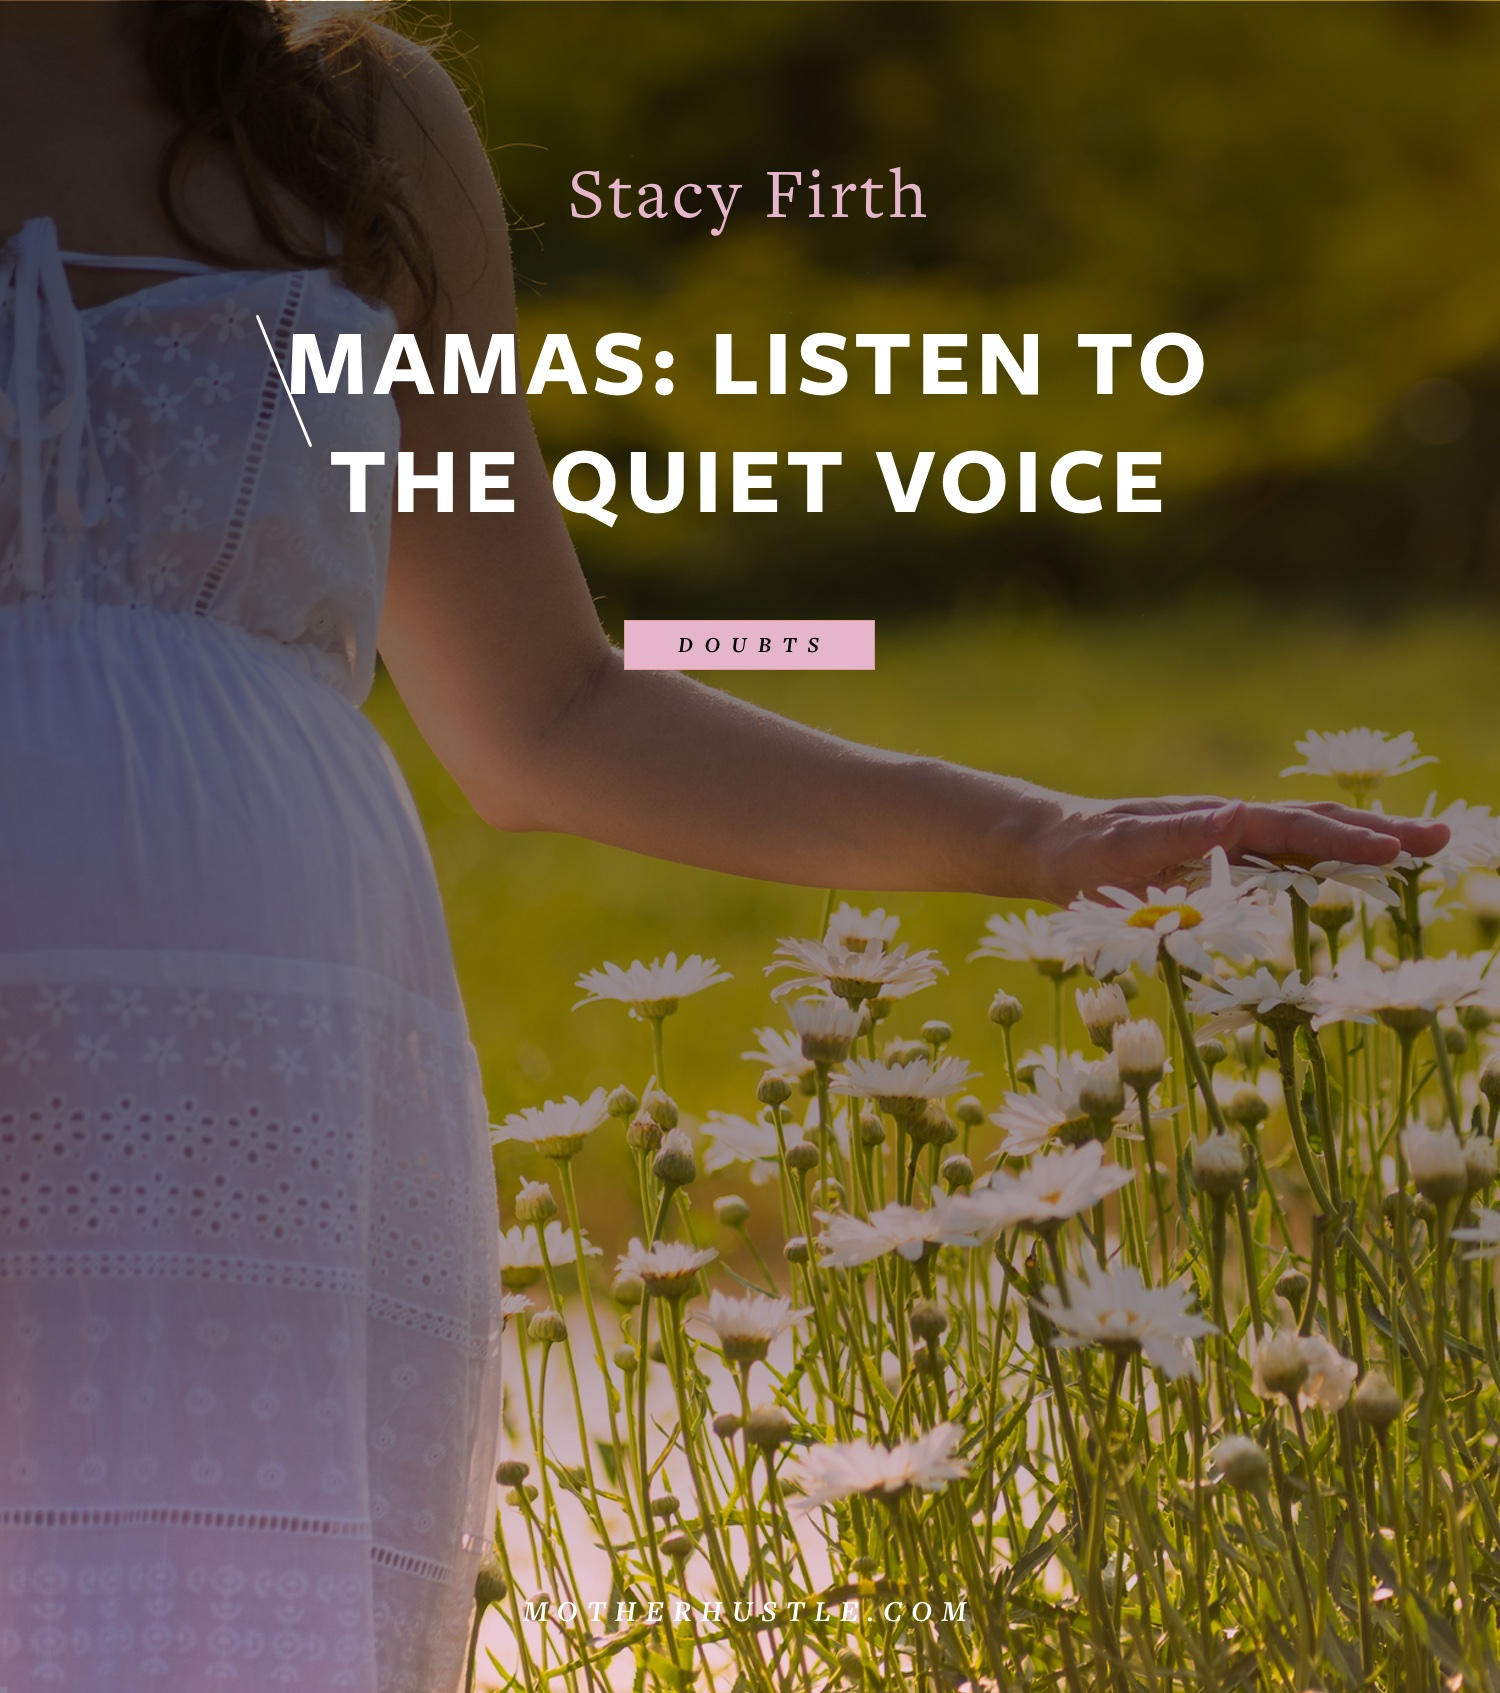 Mamas- Listen to the Quiet Voice - BY Stacy Firth for MotherHustle